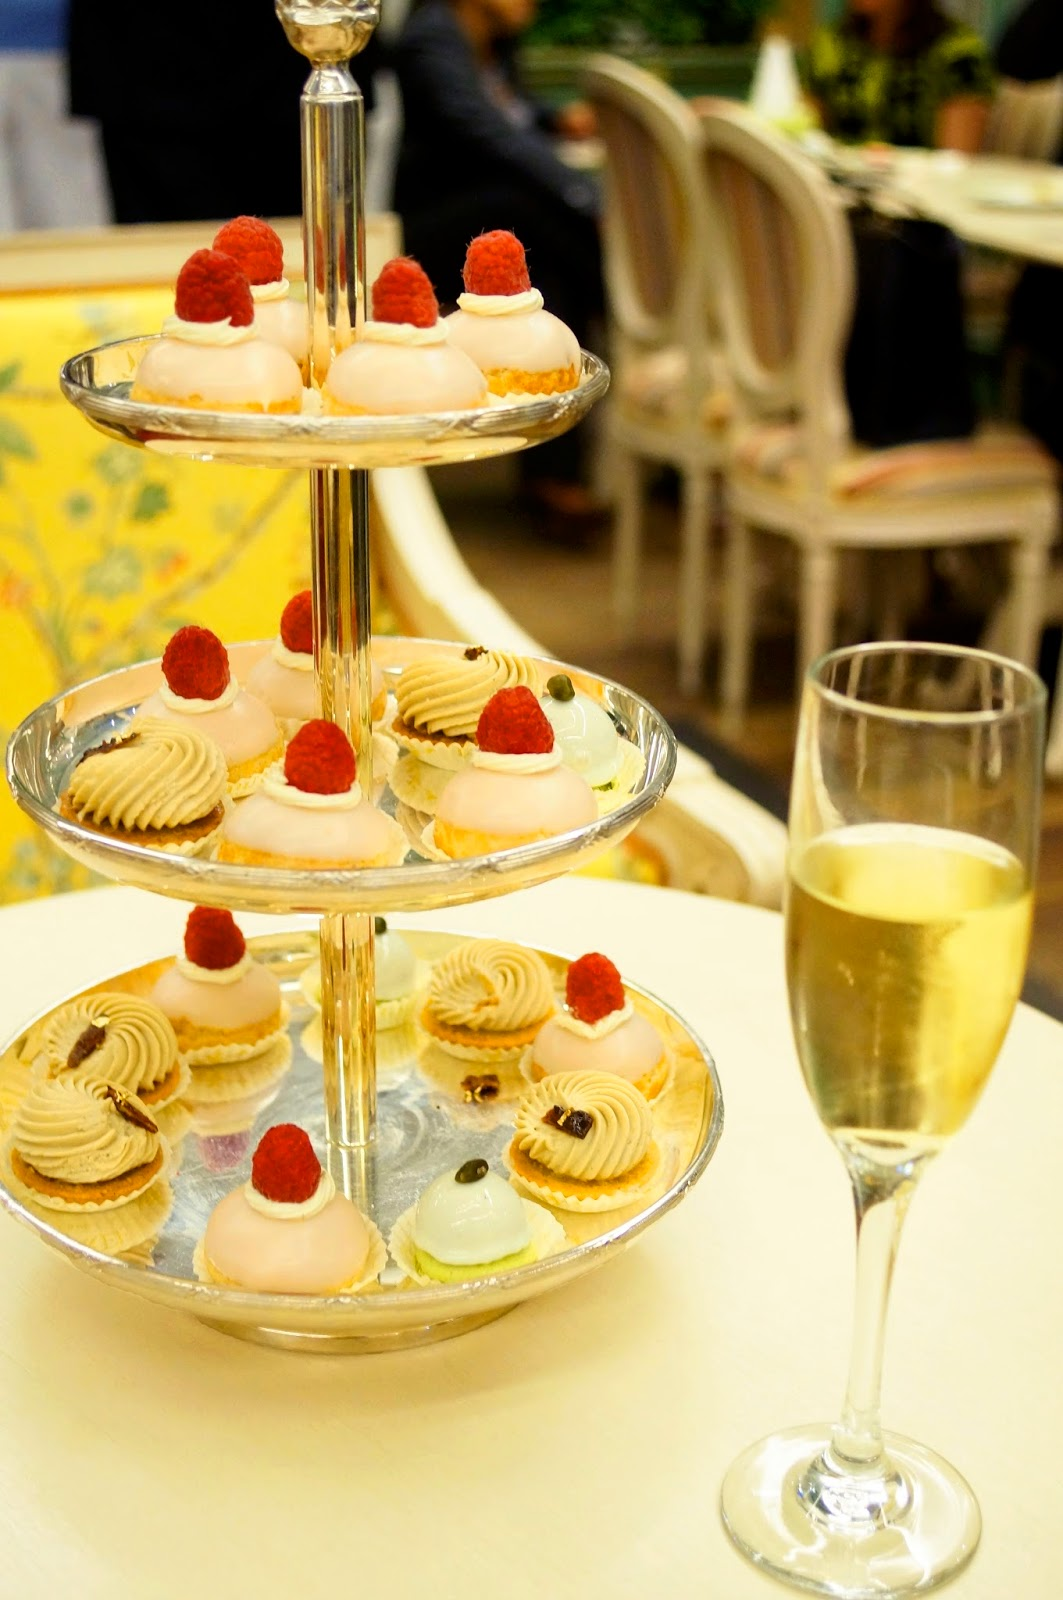 Desserts and Champagne, how fabulous!